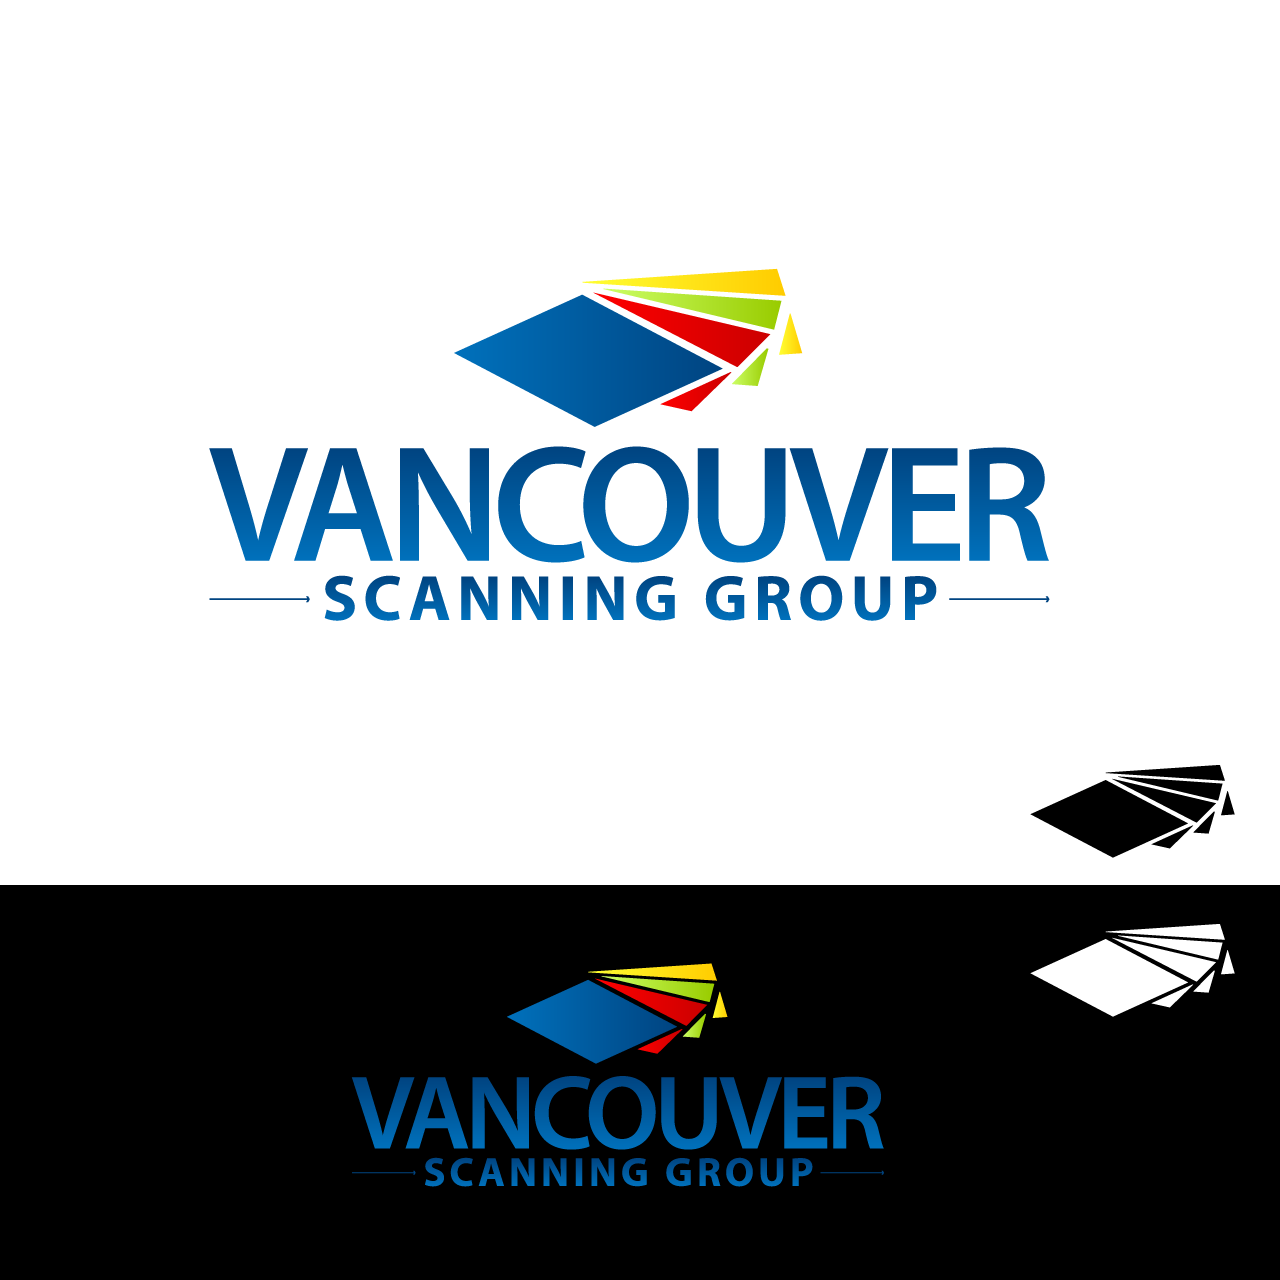 Logo Design by umxca - Entry No. 76 in the Logo Design Contest Vancouver Scanning Group.